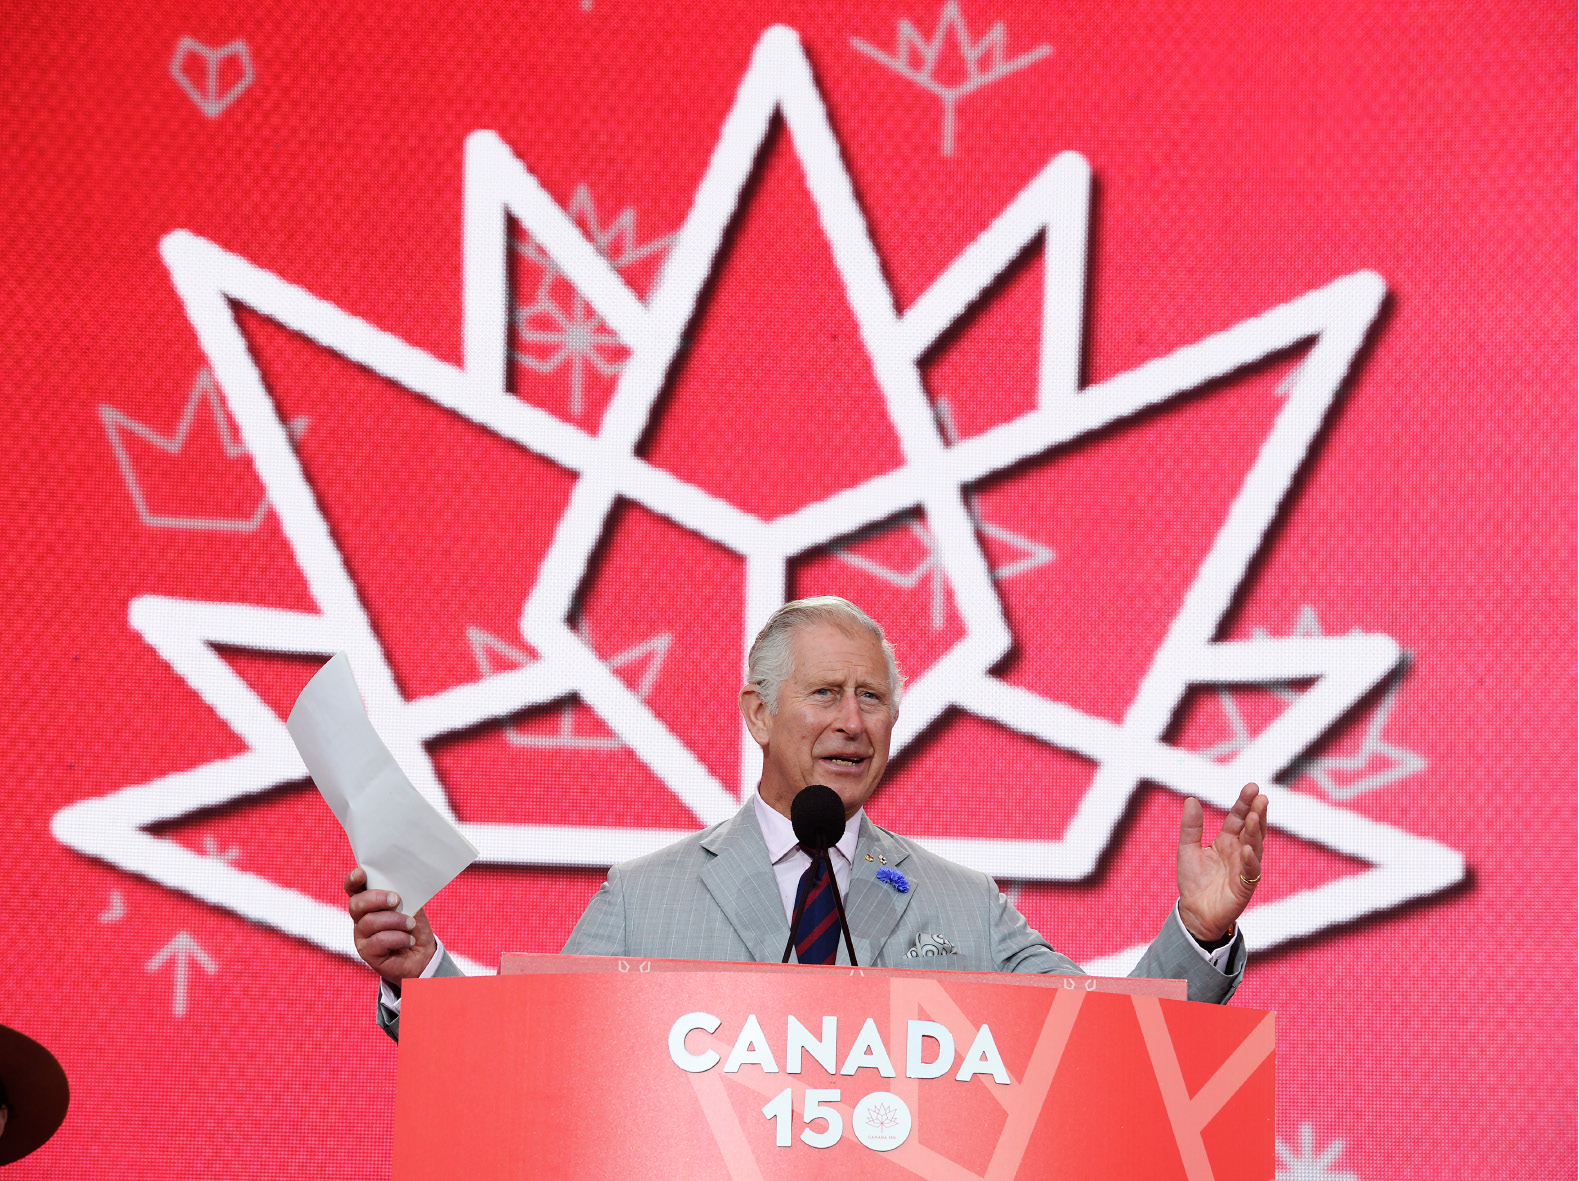 Prince Charles speaks during celebrations for Canada